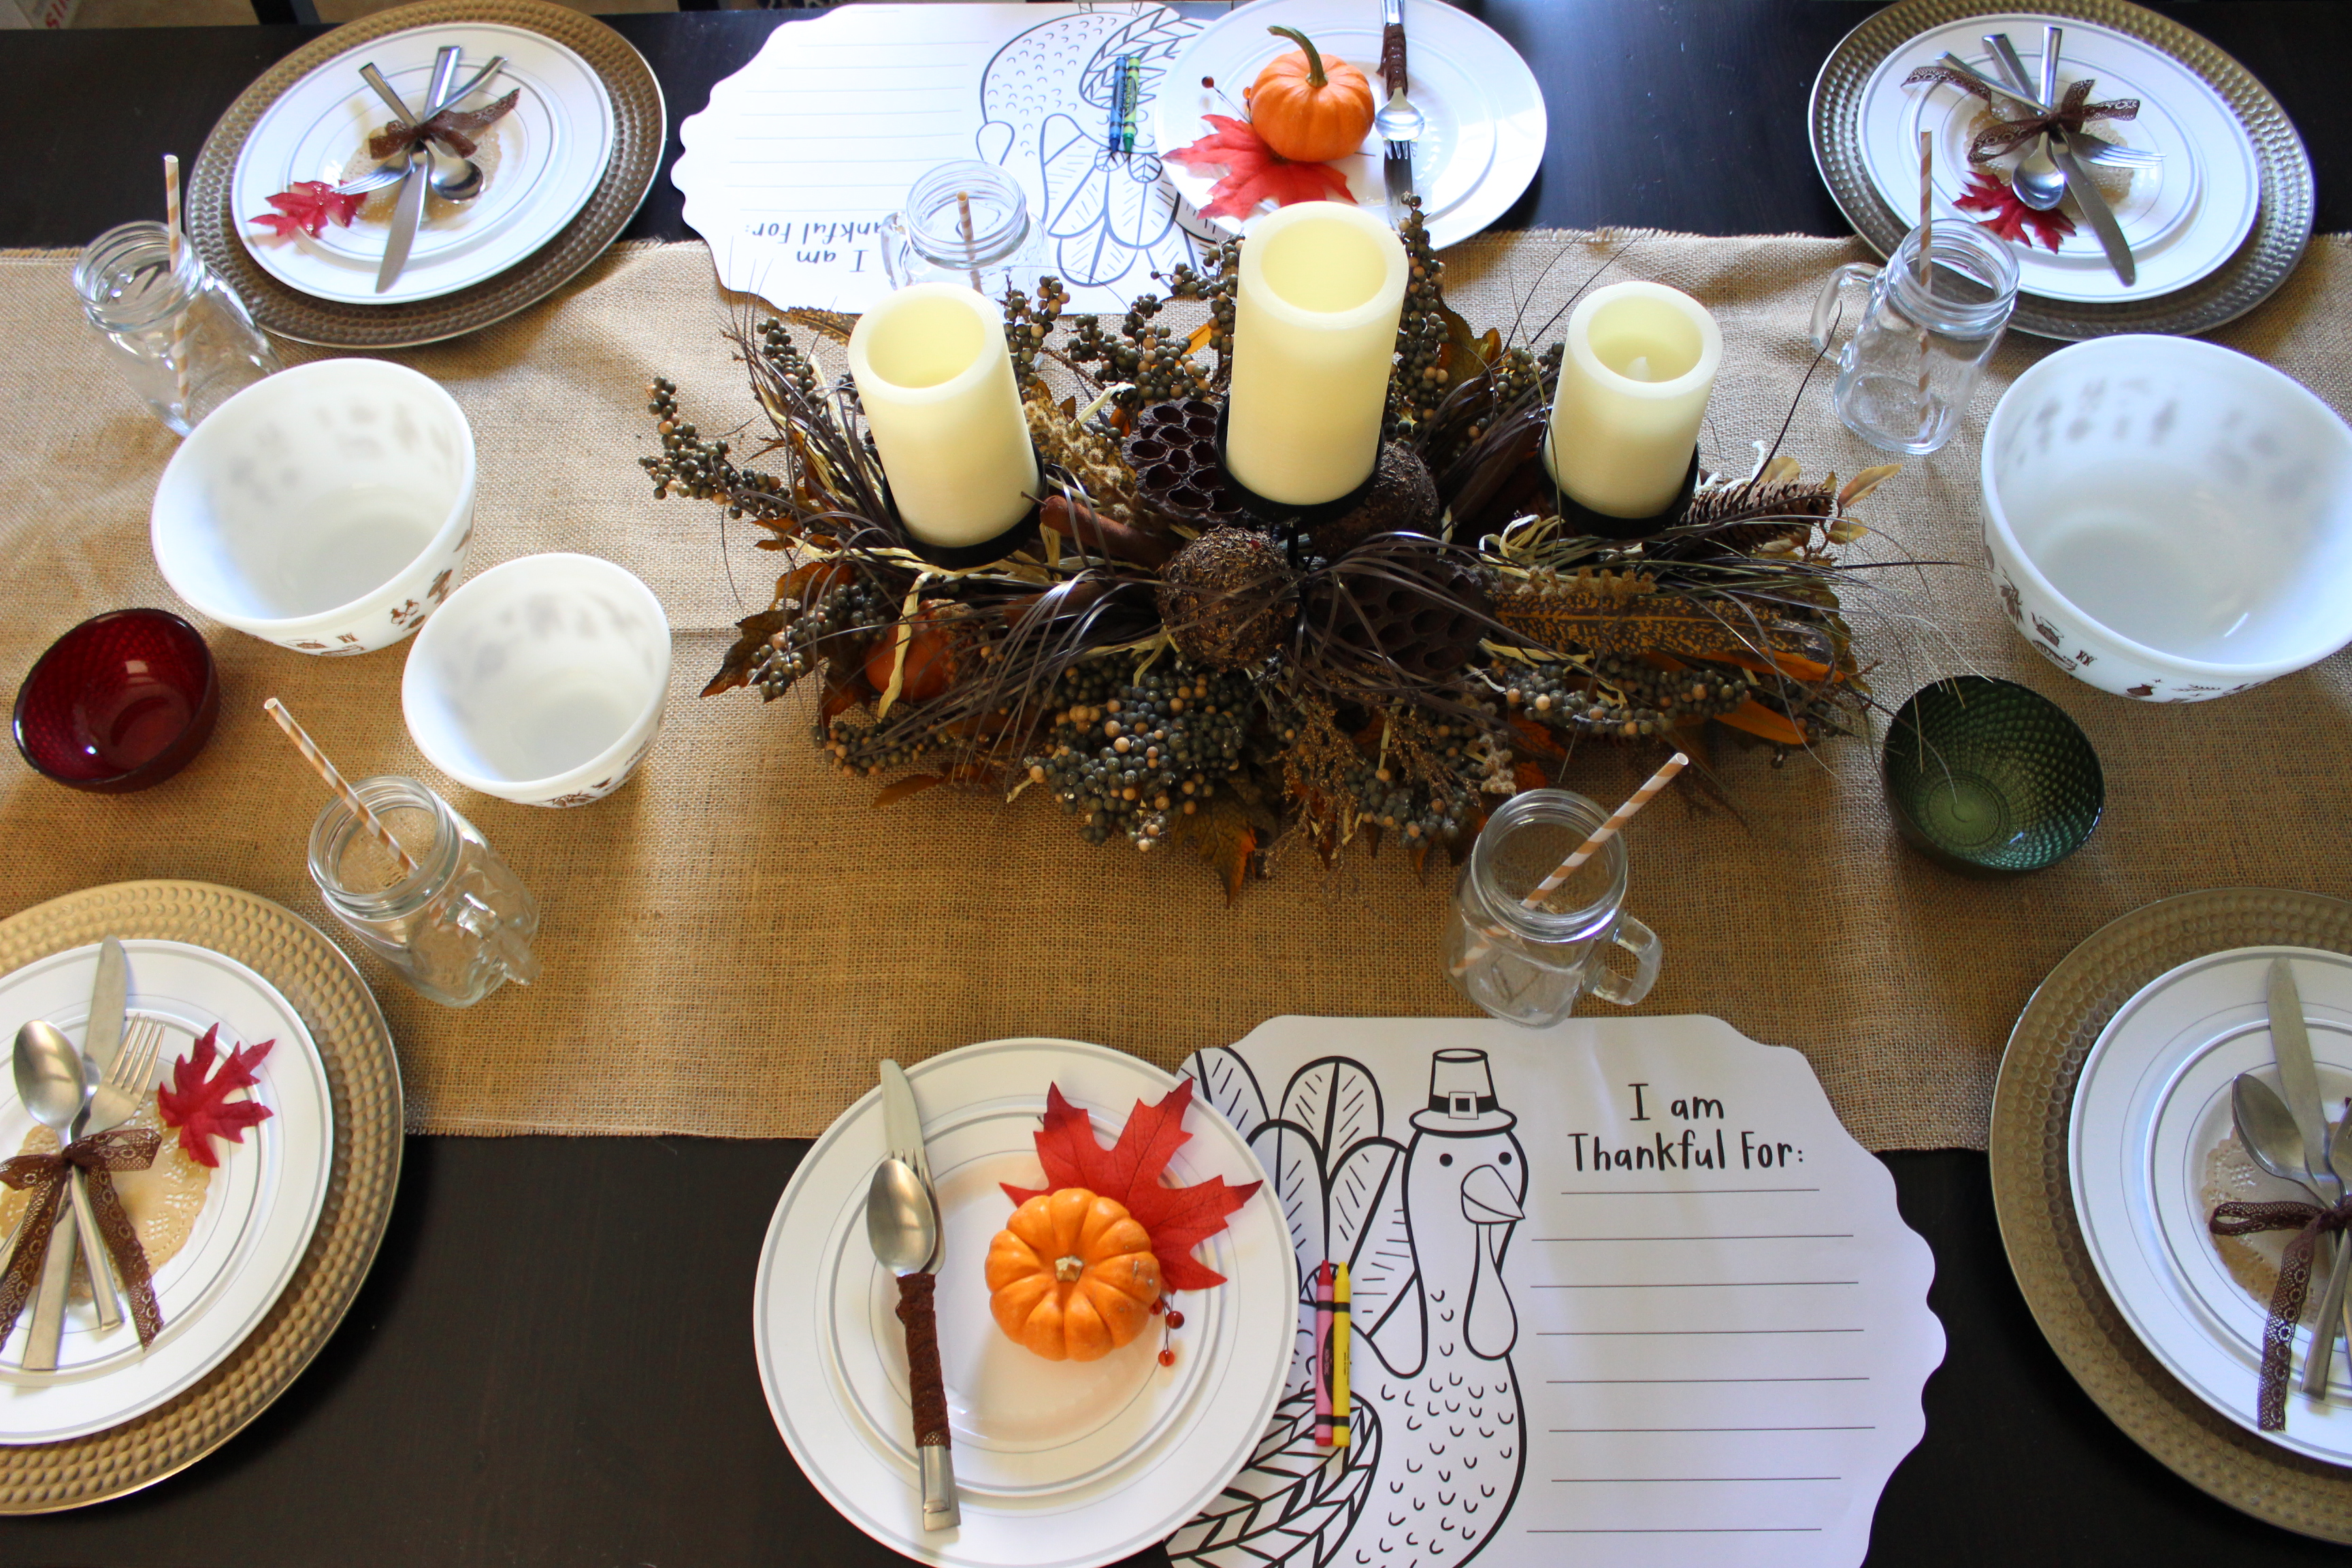 A place mat for writing the things you are grateful for is a nice touch to your Thanksgiving table decor